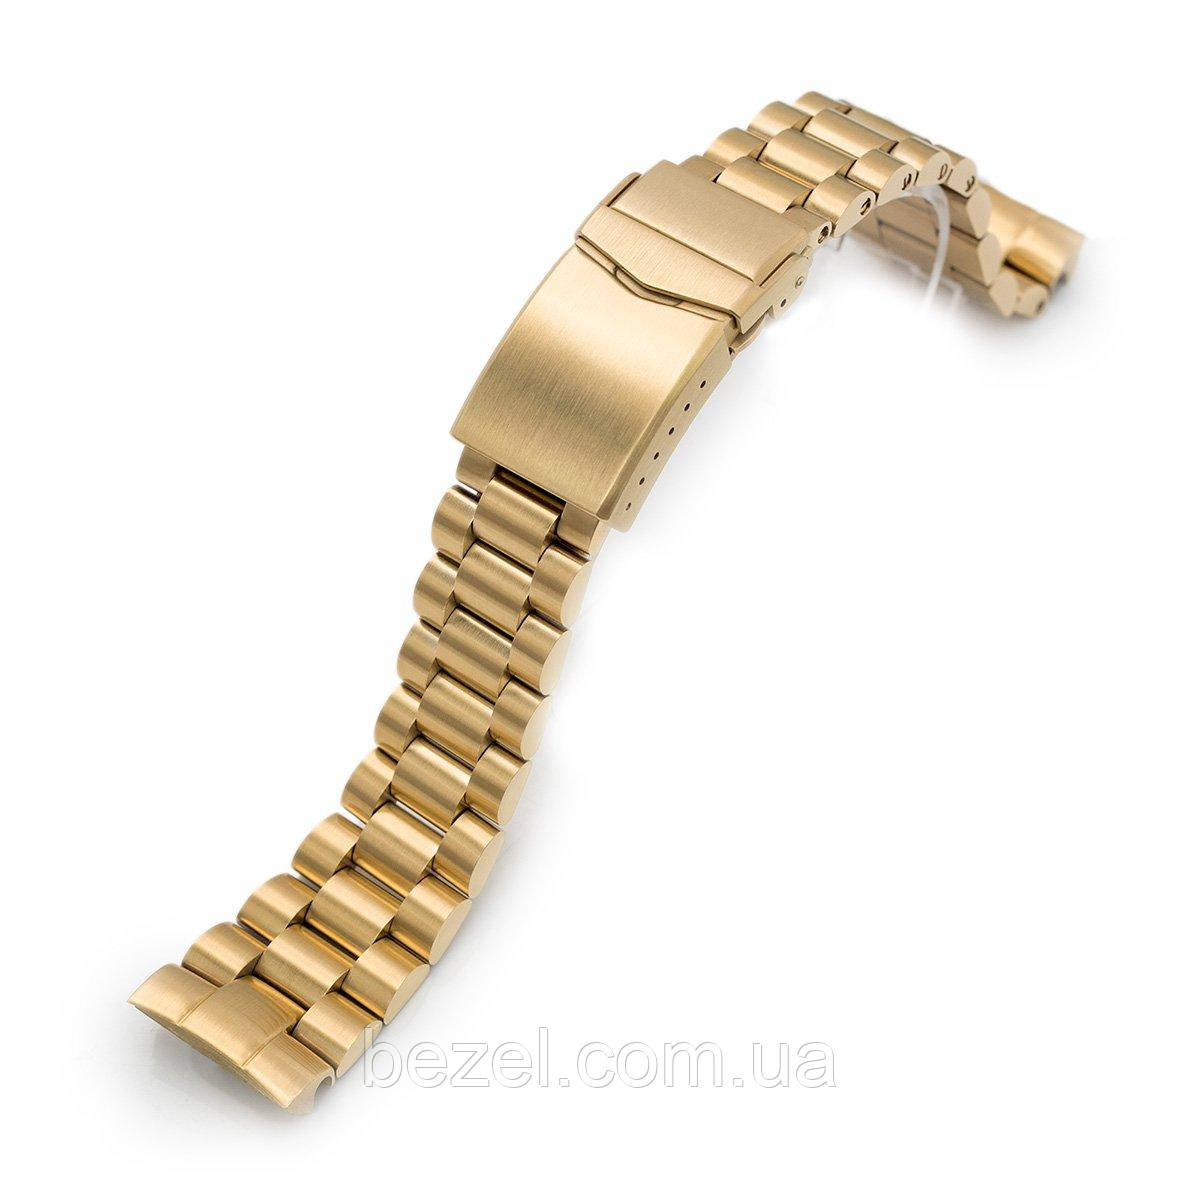 22mm Endmill 316L Stainless Steel Watch Bracelet for Seiko New Turtles SRPC44, V-Clasp full IP Gold